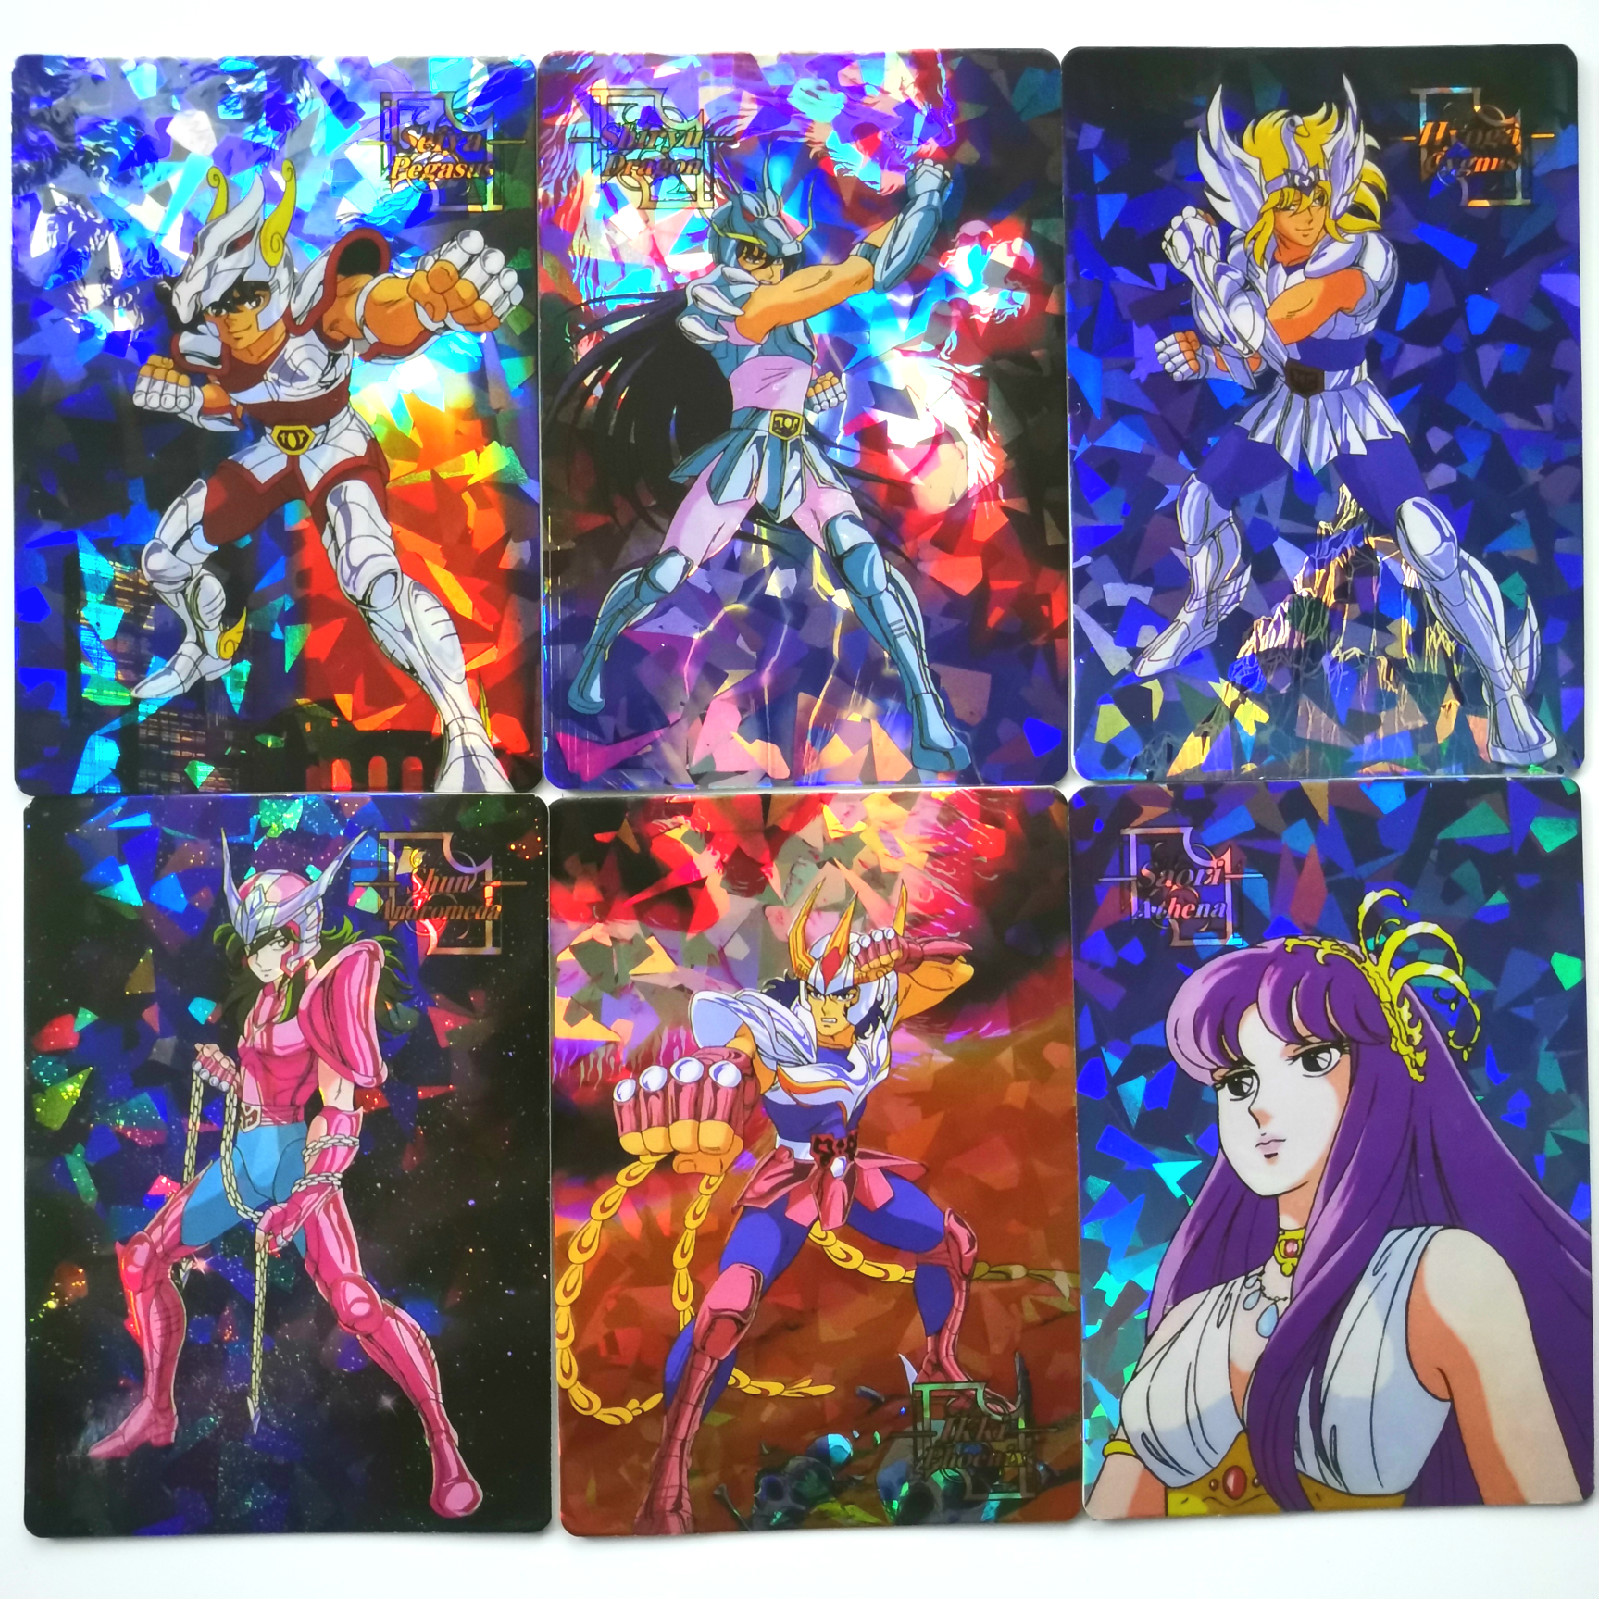 90pcs/set Saint Seiya Broken Glass Childhood Memories Toys Hobbies Hobby Collectibles Game Collection Anime Cards